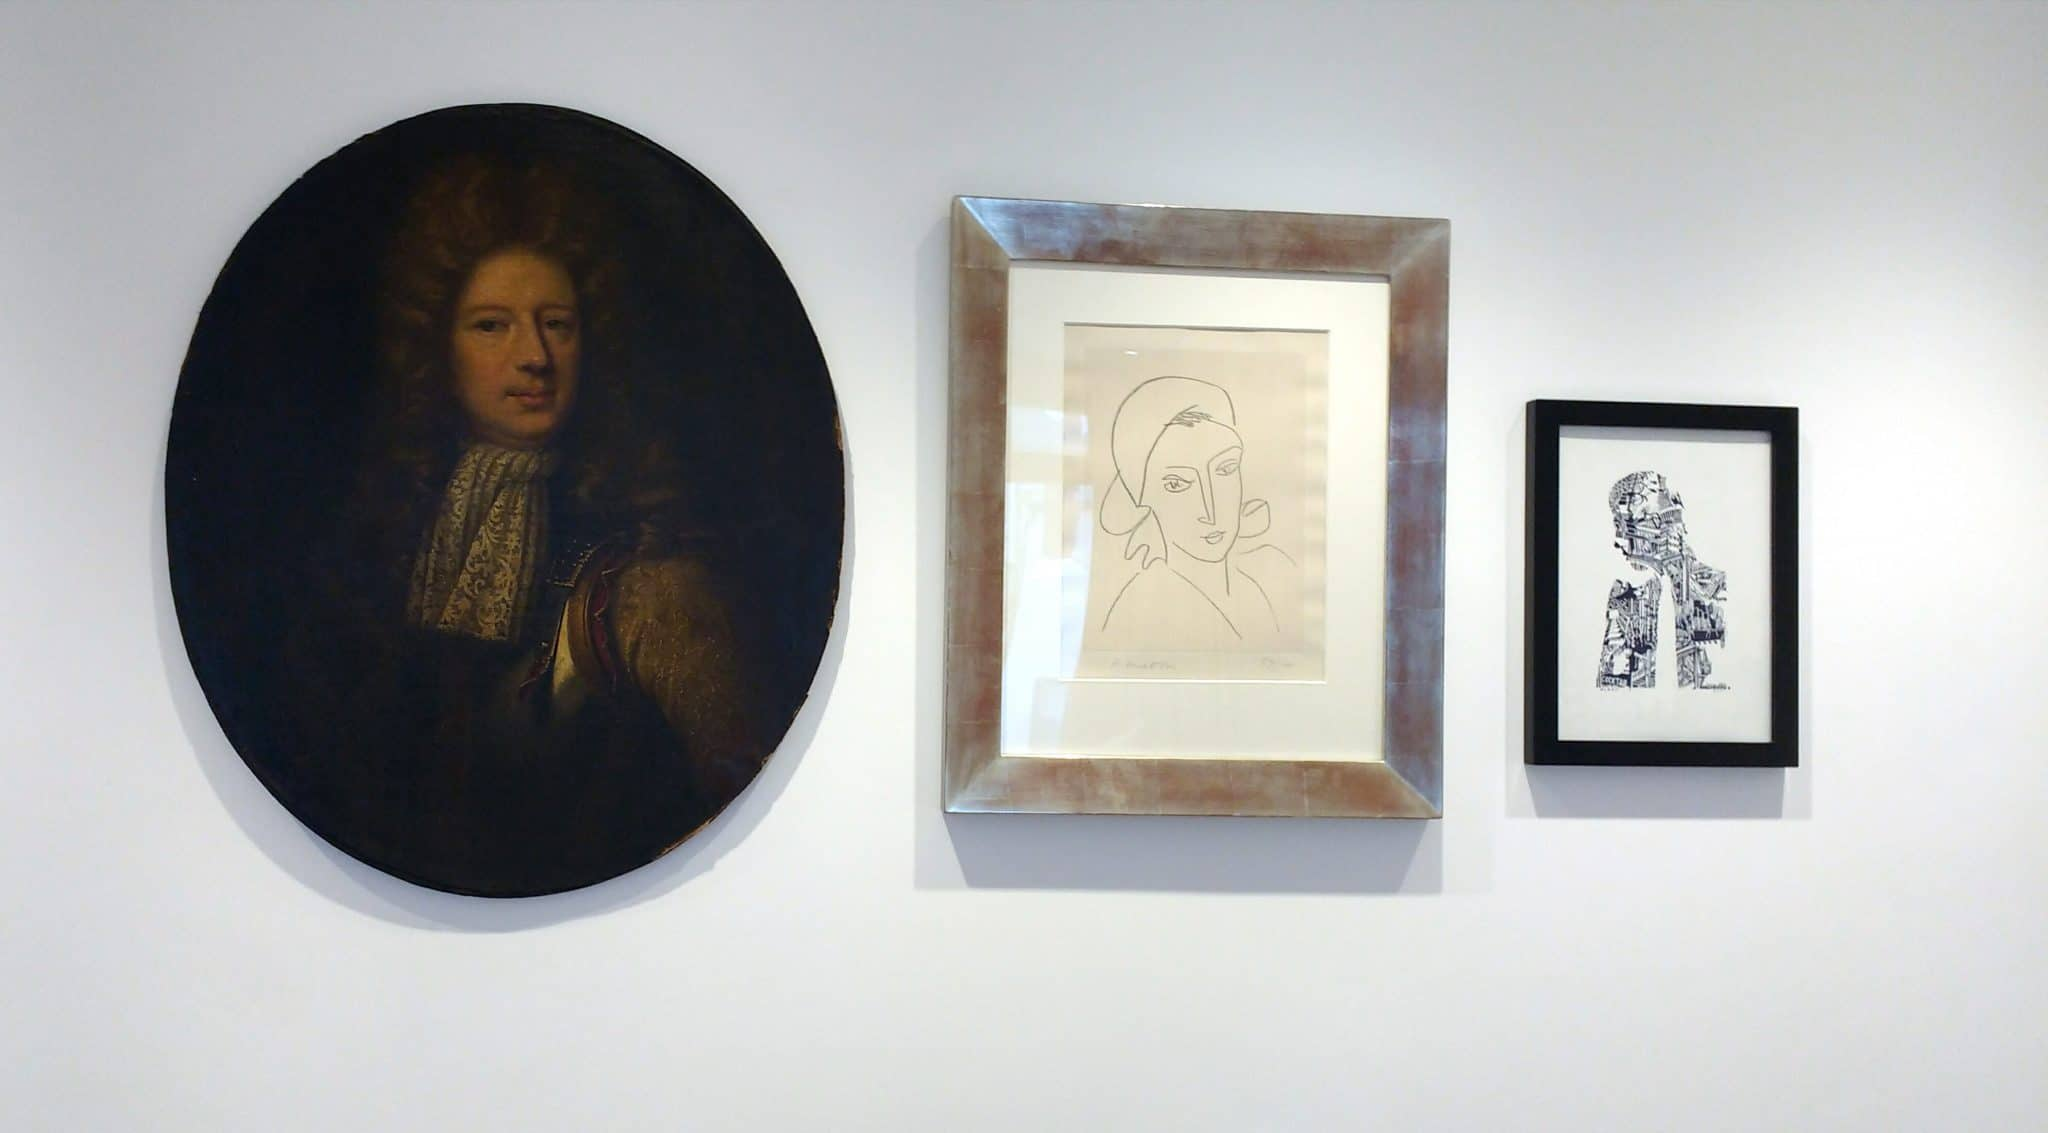 A trio of portraits, each from a distinctly different era and artist. Conversing through the ages, hung on a wall in a guest bedroom in in Kemp Town.